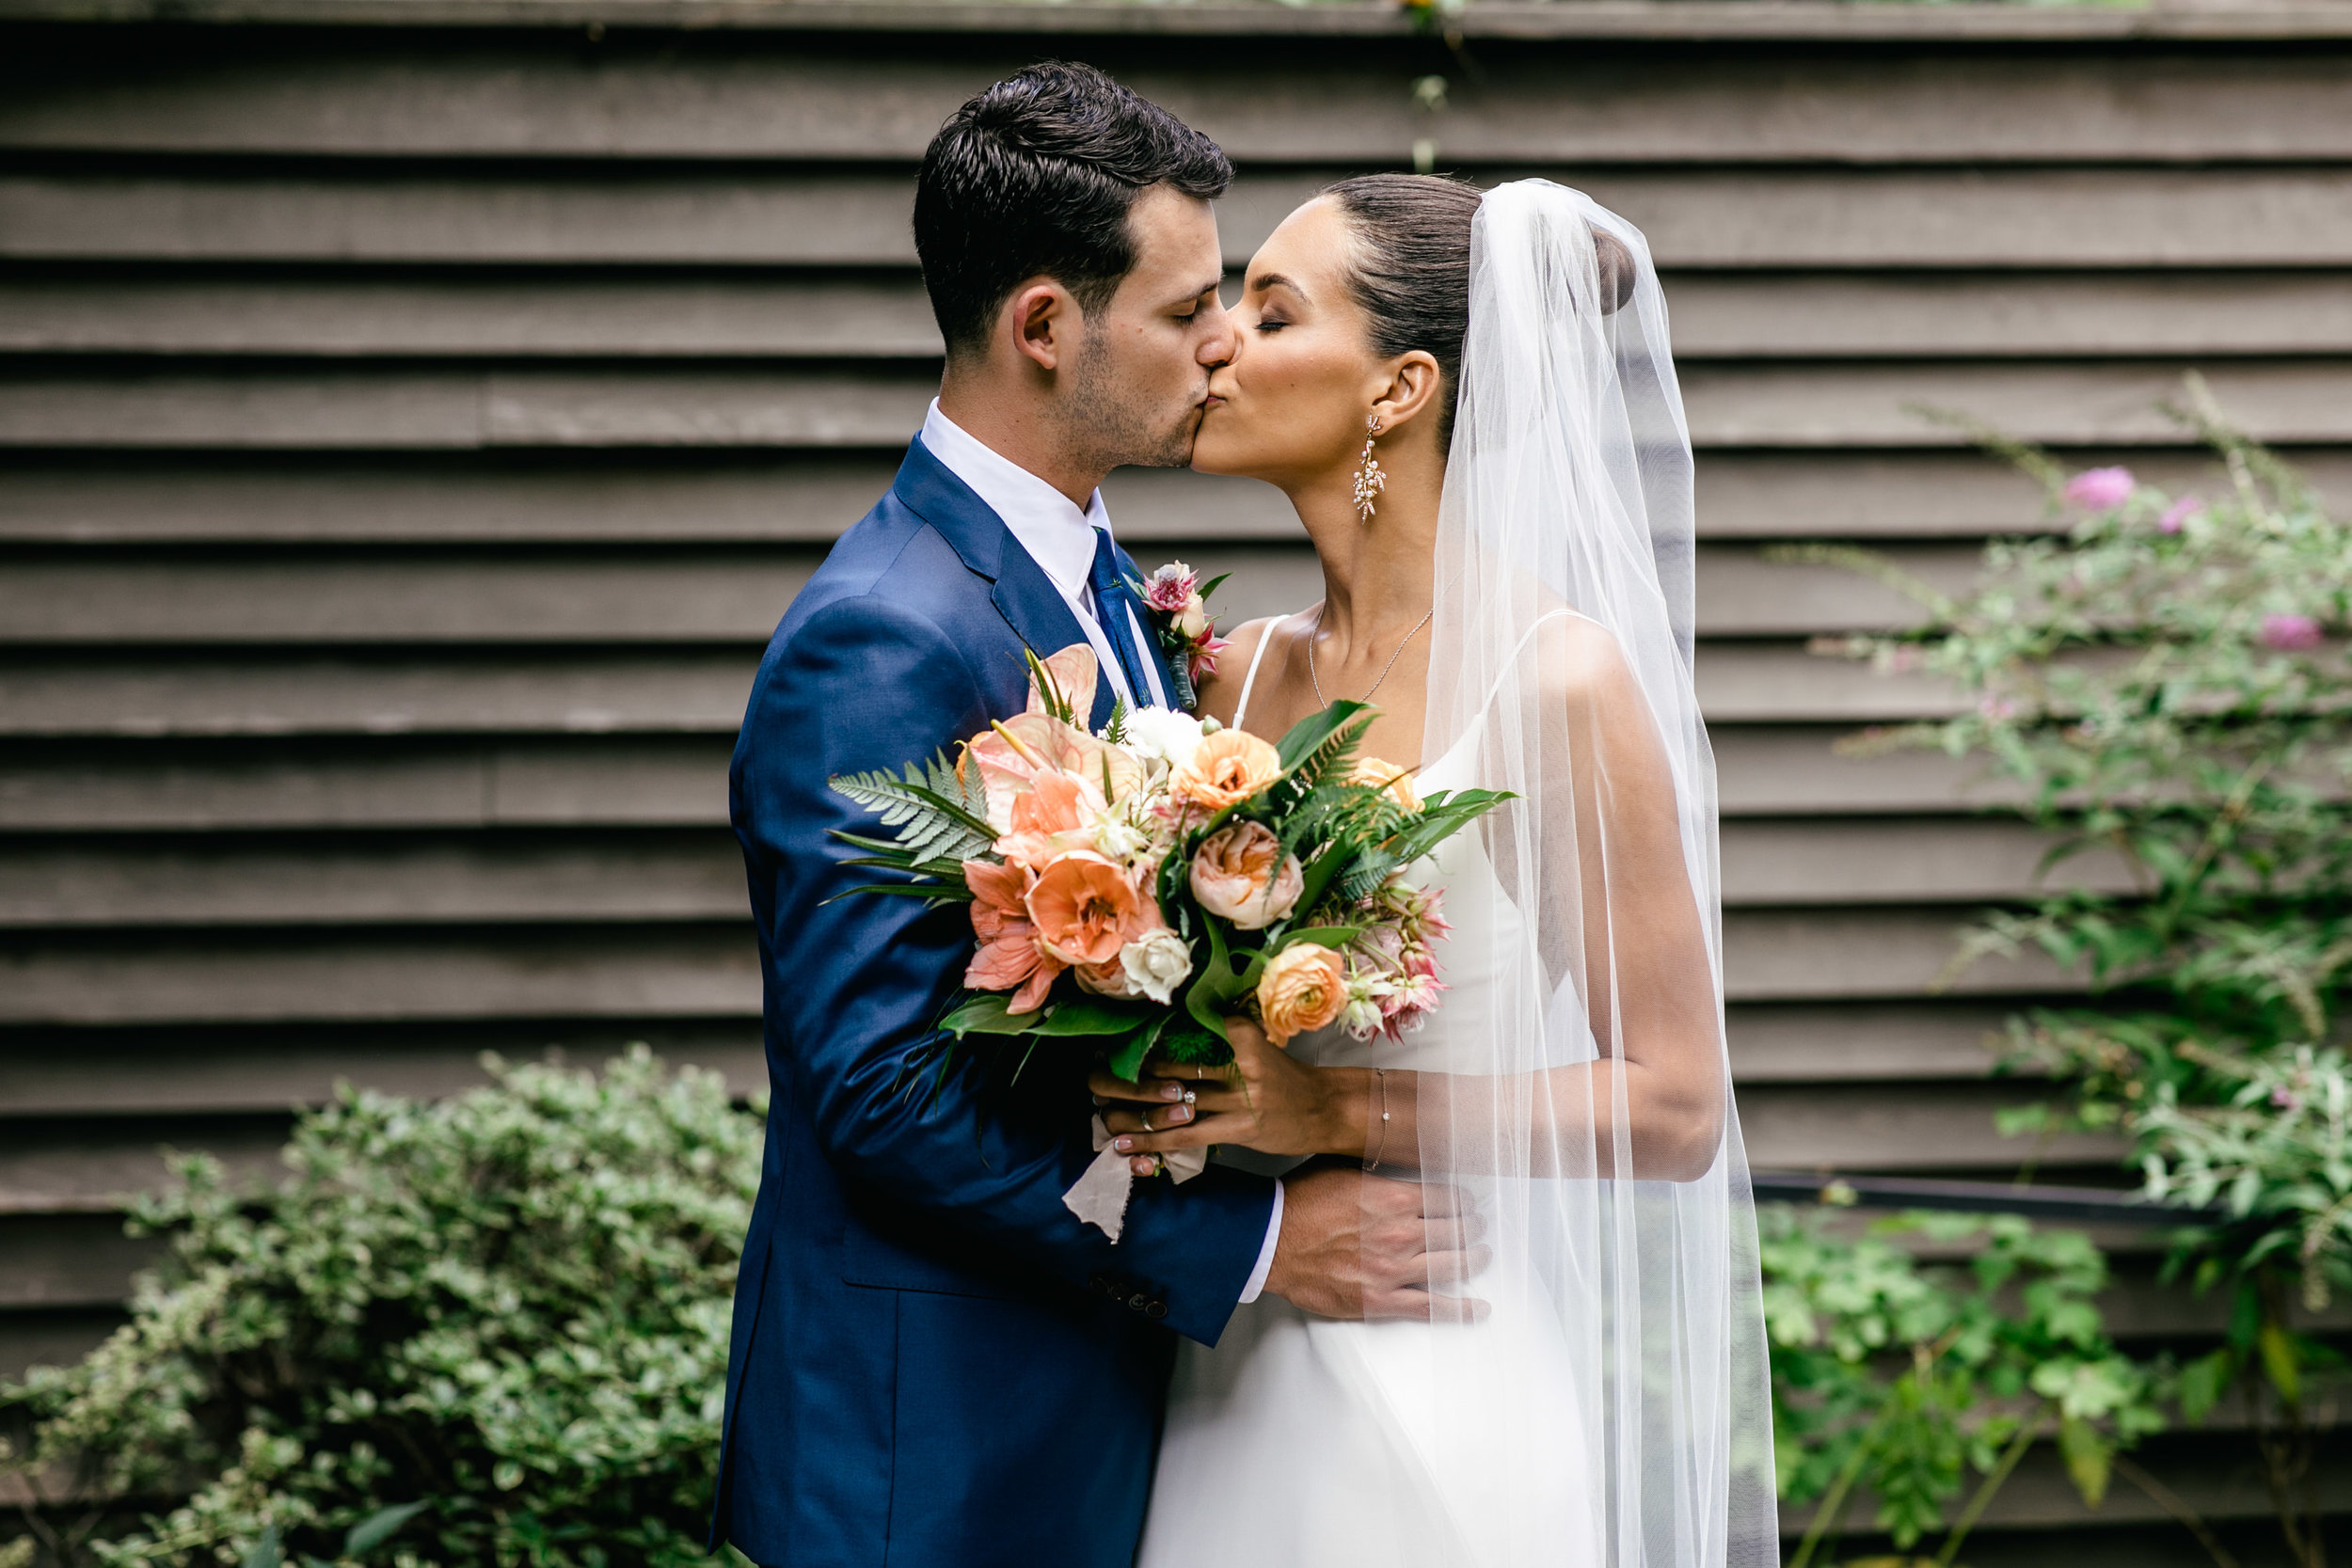 photography-wedding-weddings-natural-candid-dock 5 dc-washington dc-philadelphia-mixed race-editorial-modern-fine-art-035.JPG